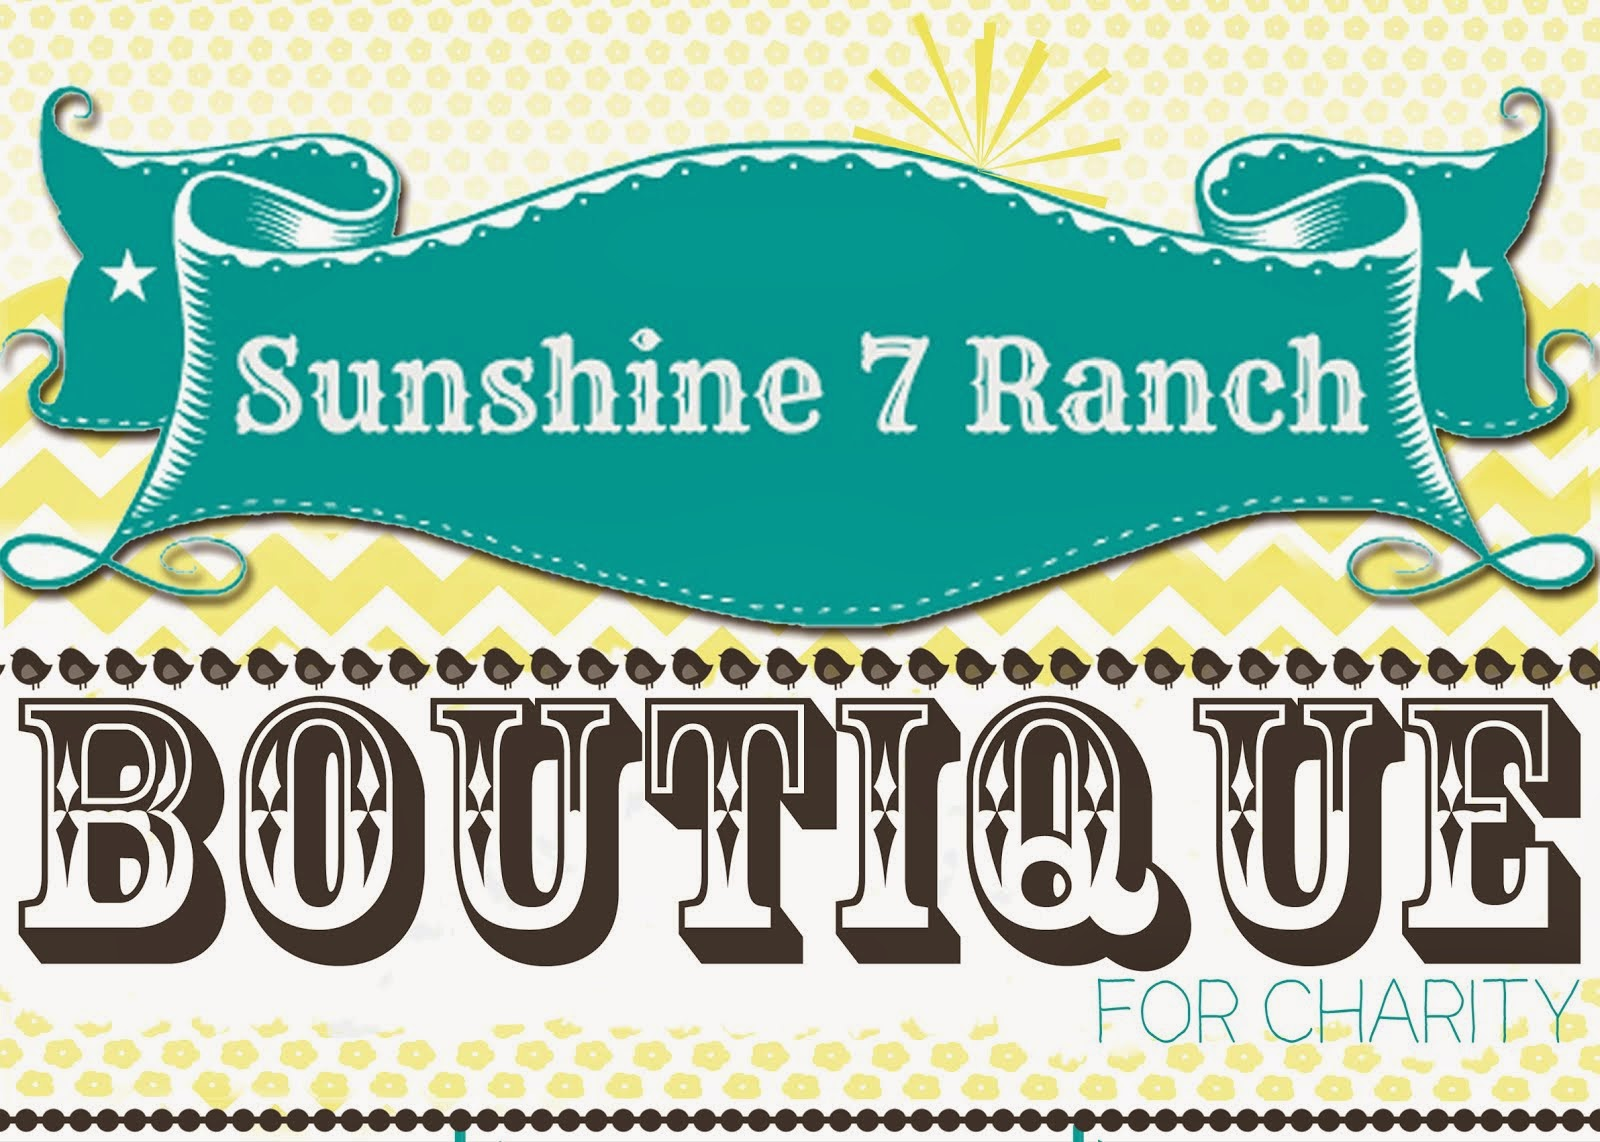 Sunshine 7 Ranch